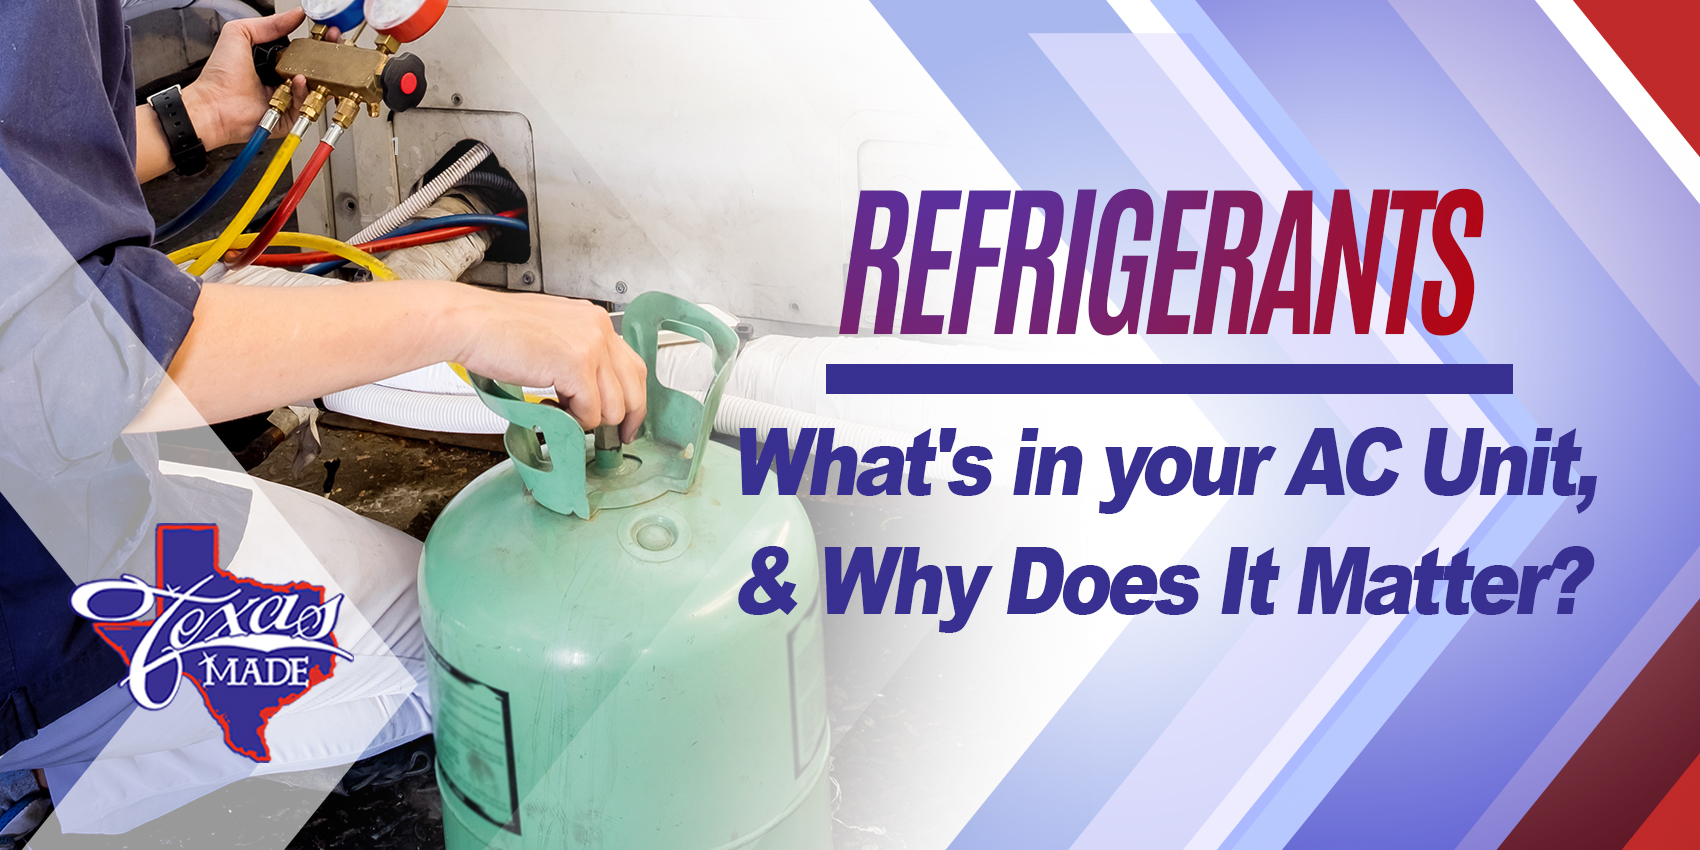 Refrigerants - What's in your AC Unit, and Why Does It Matter?